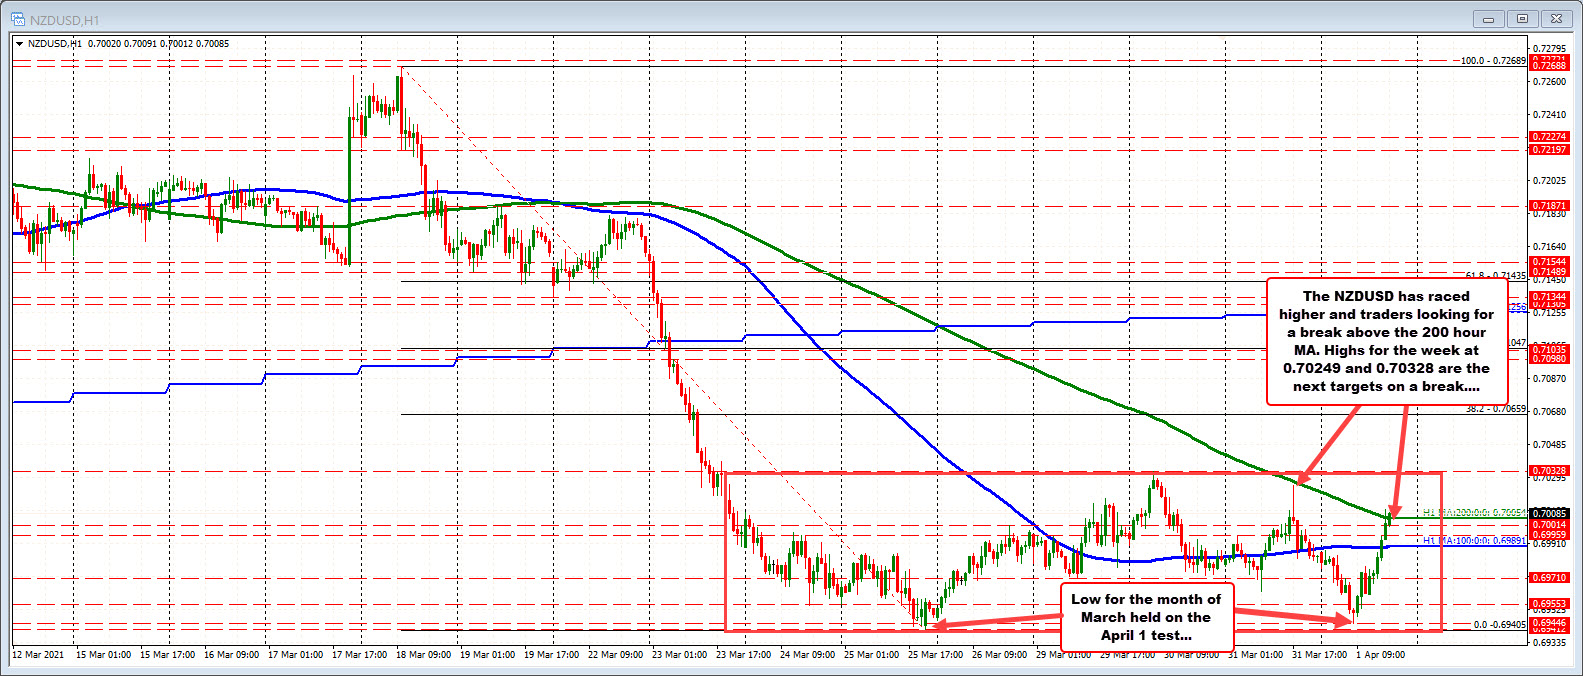 The price has pushed above the200 hour moving average. Can the buyers keep themomentum going?